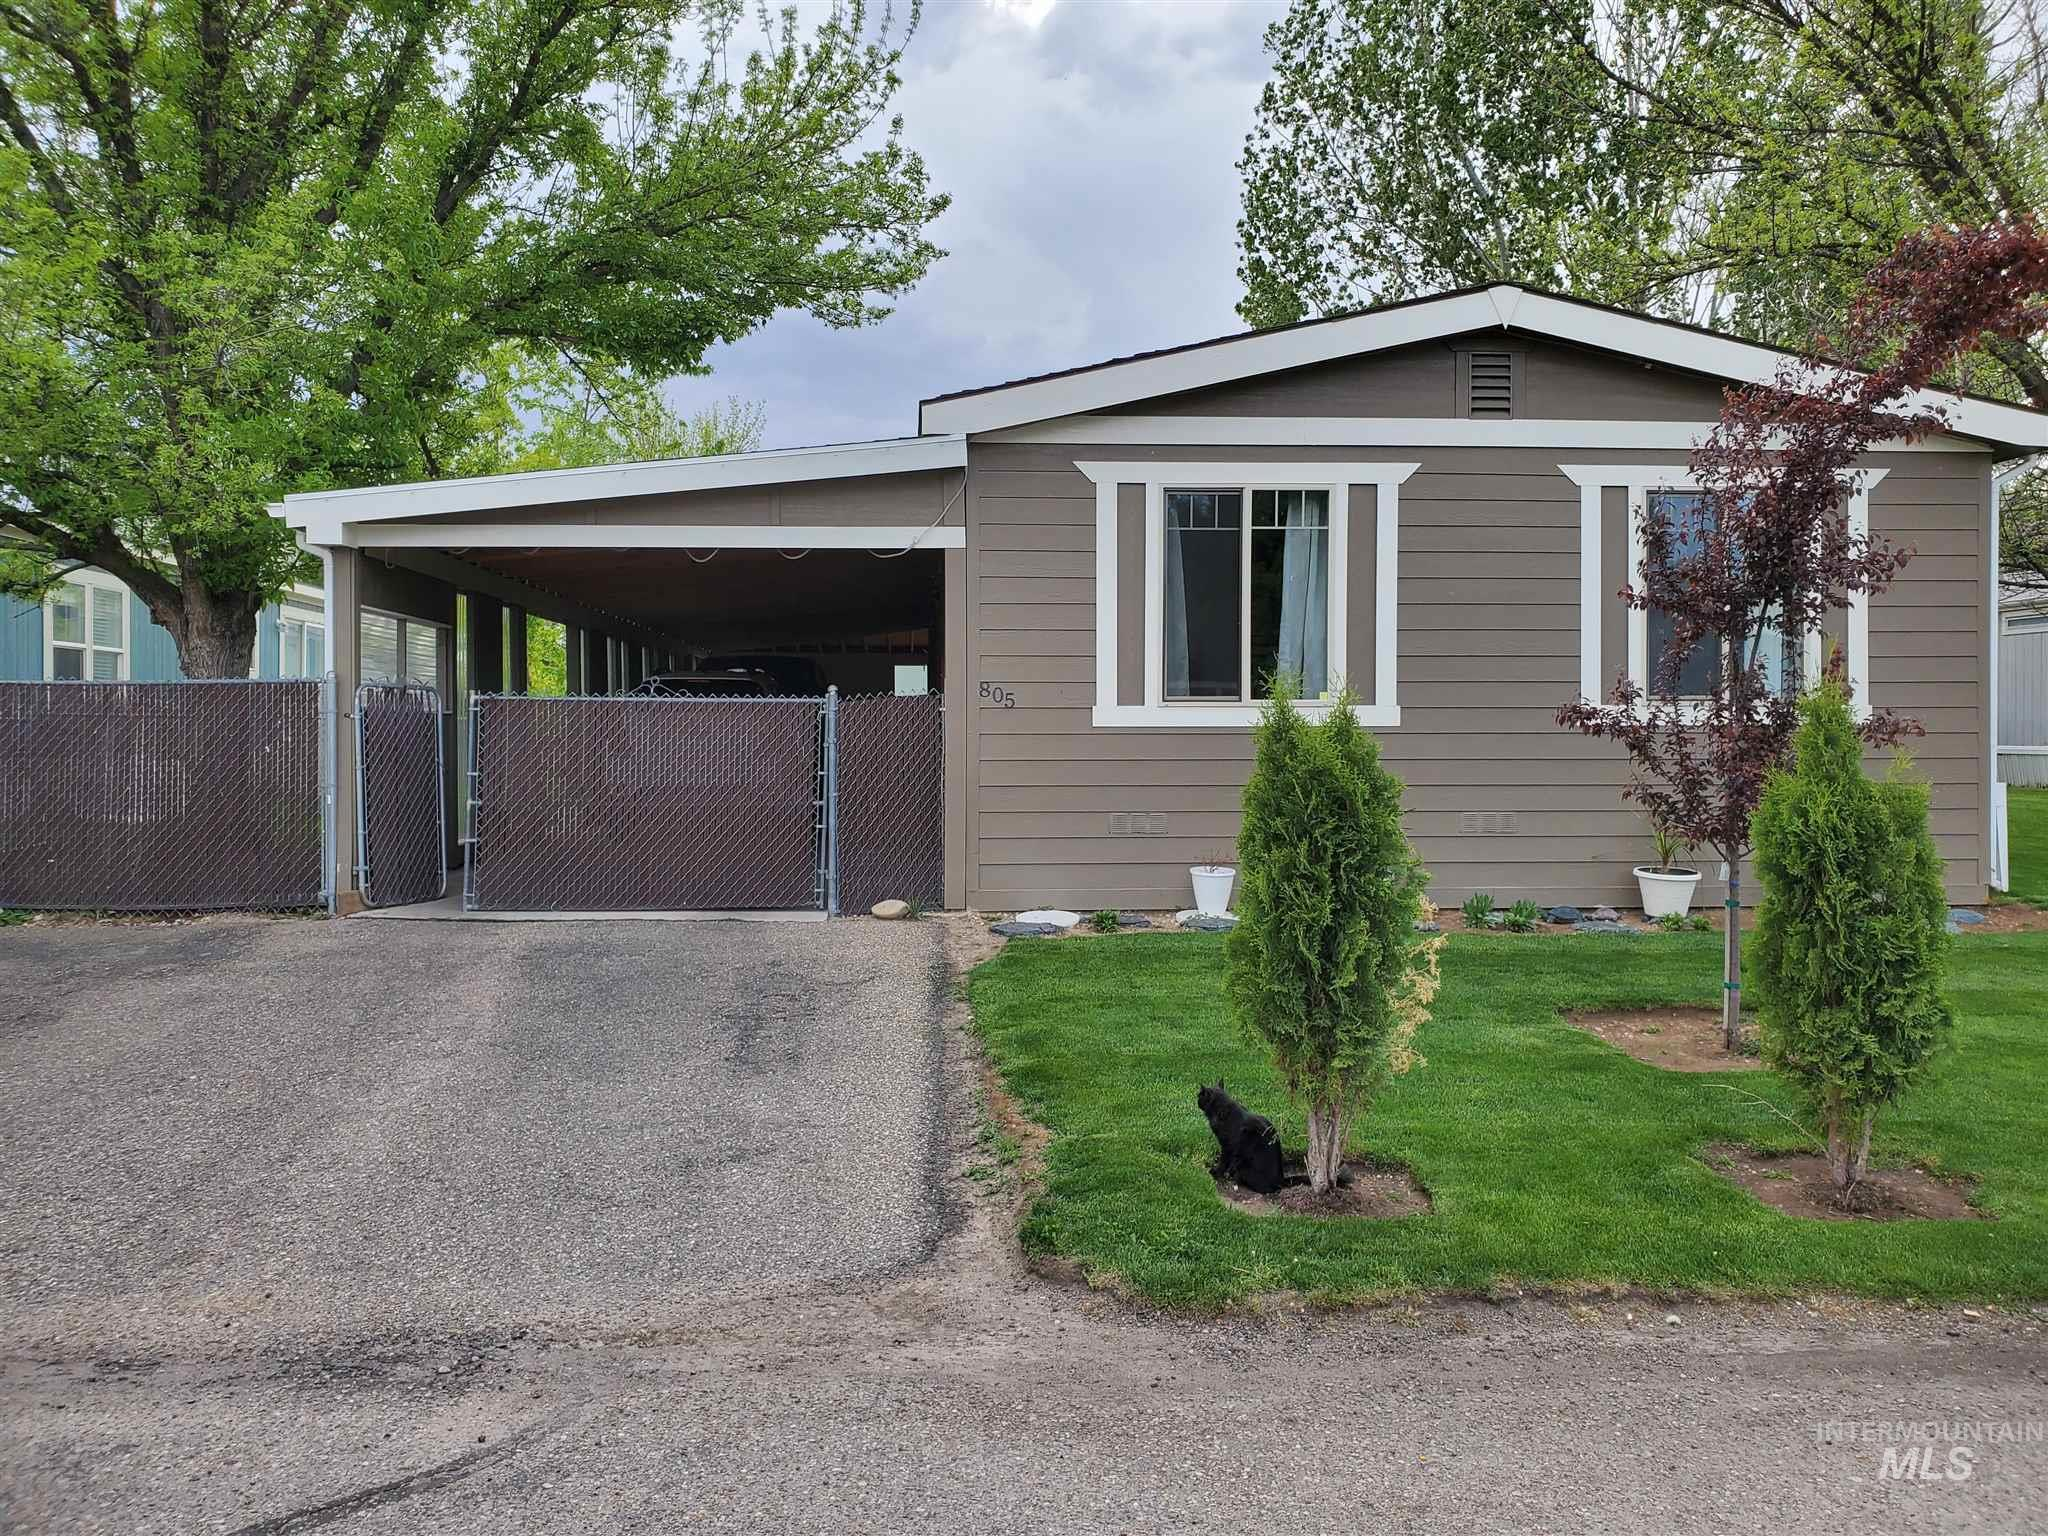 805 LONG VALLEY ST Property Photo - Nampa, ID real estate listing